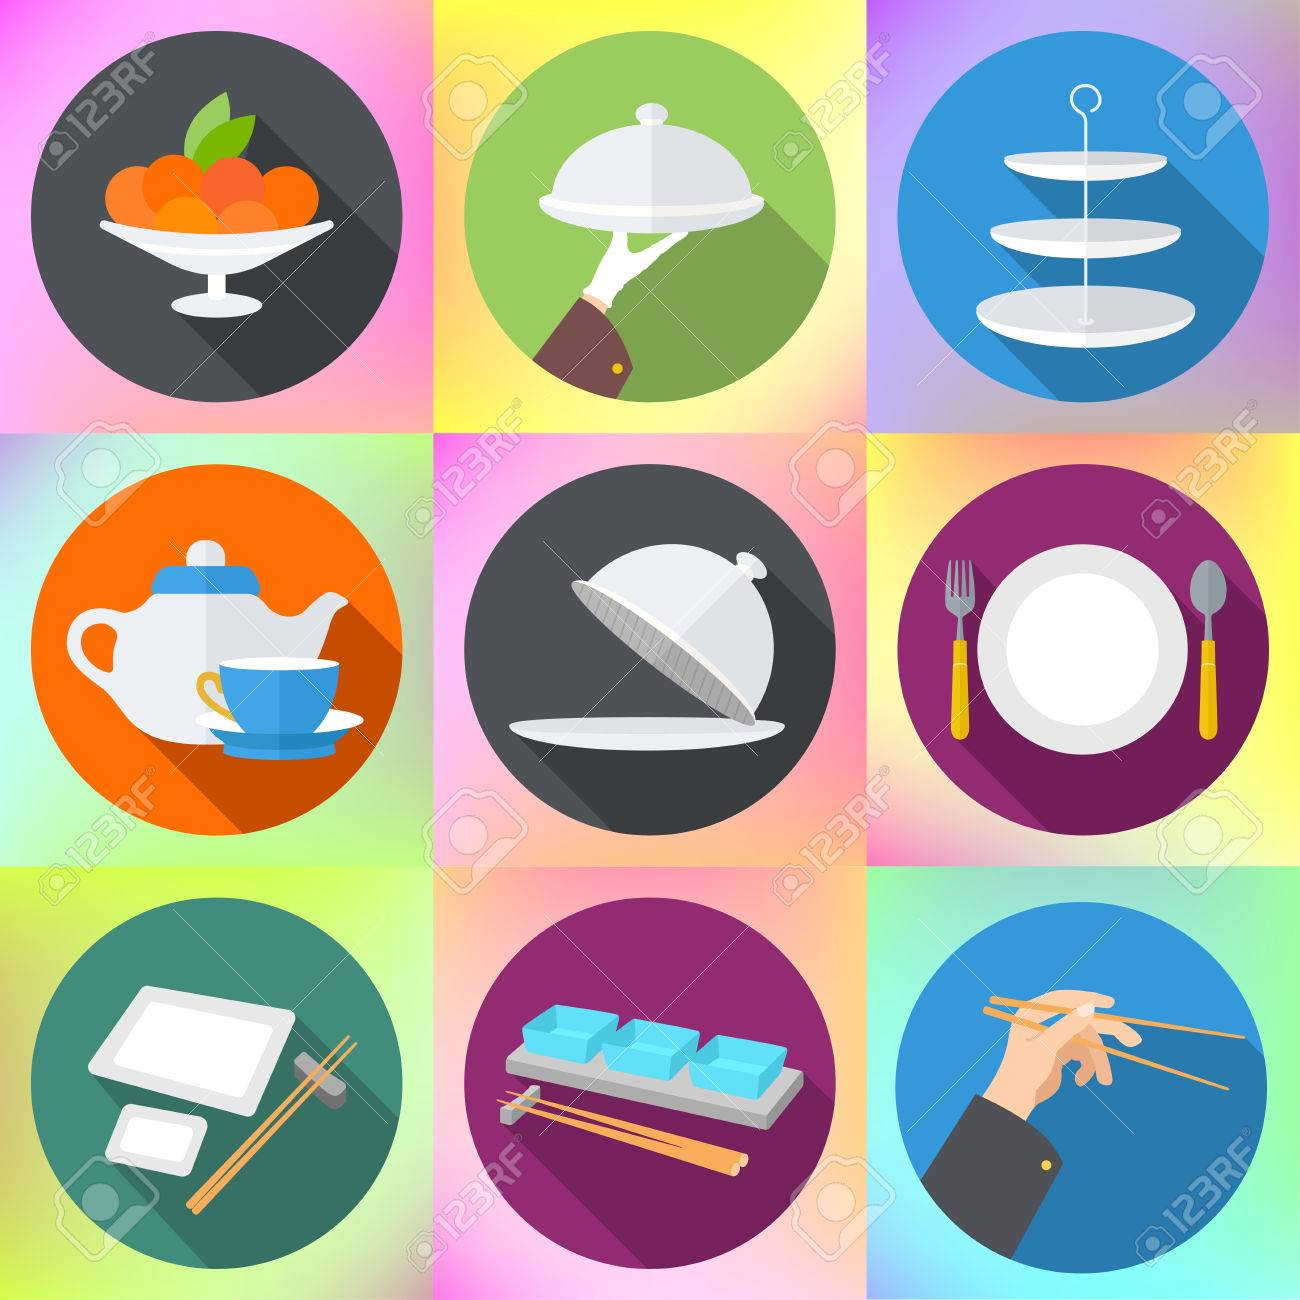 Restaurant Kitchen Utensils set flat design icons for restaurant. kitchen utensils and